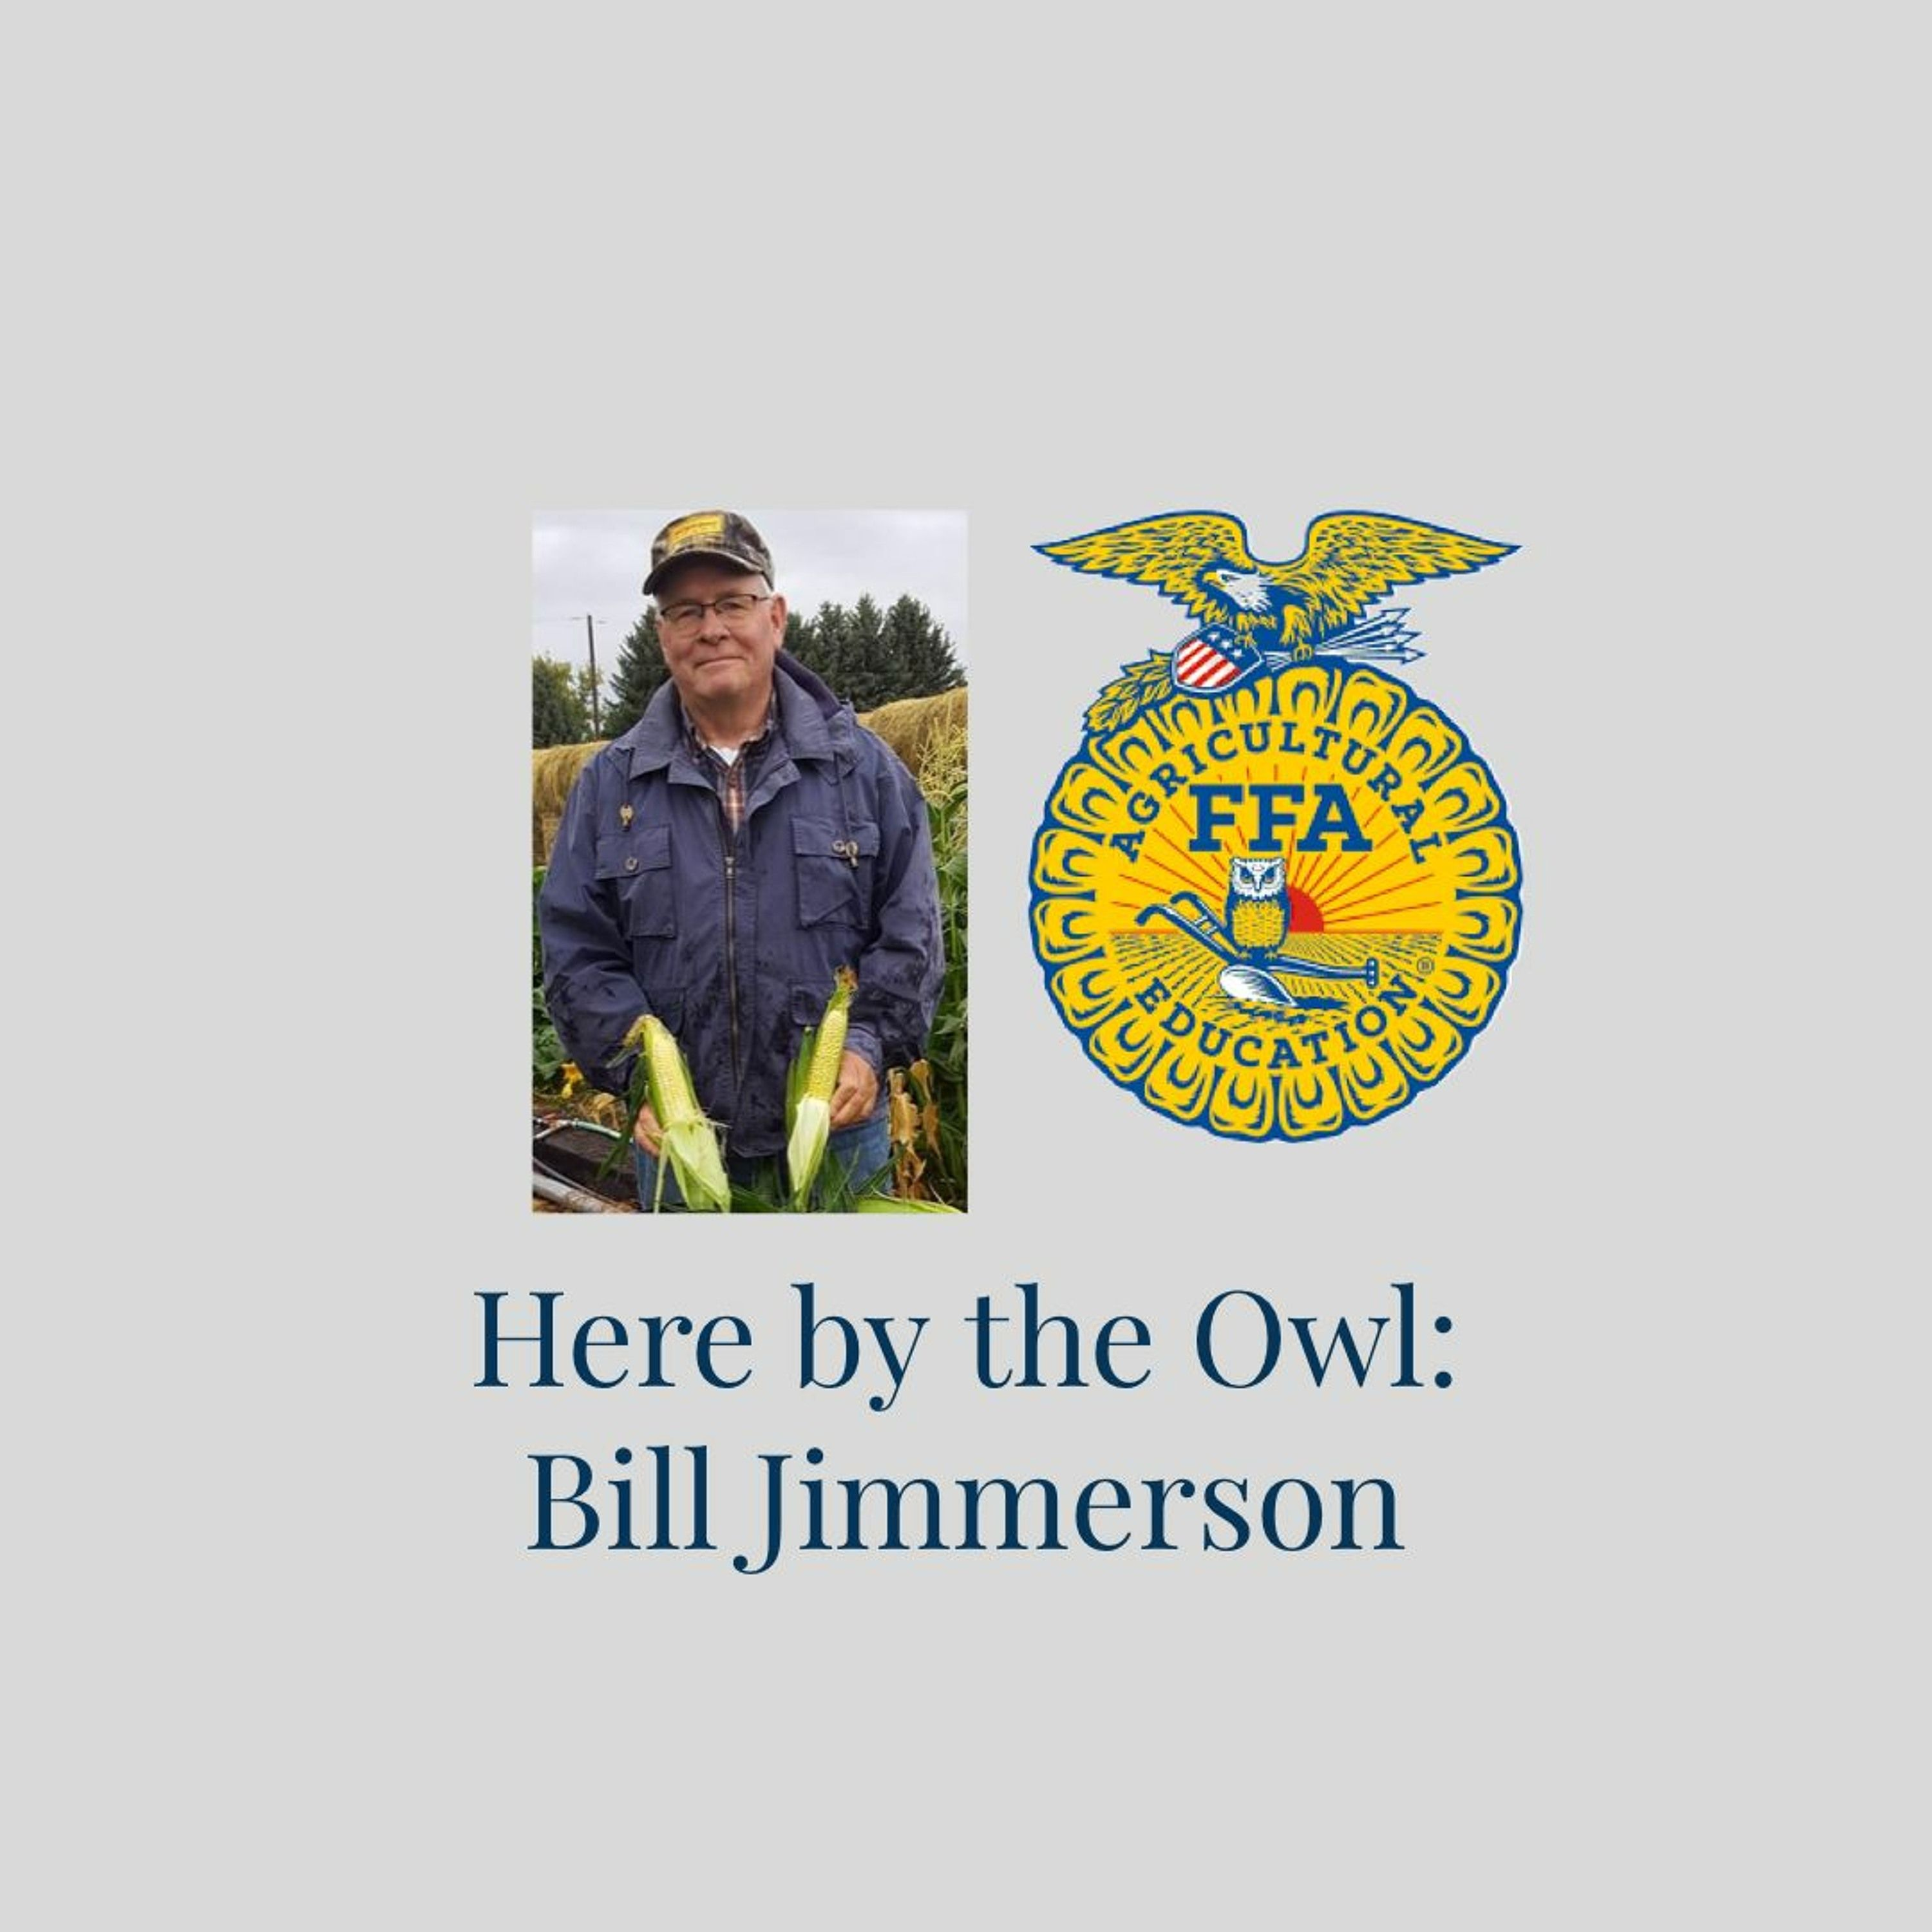 Here by the Owl: Bill Jimmerson